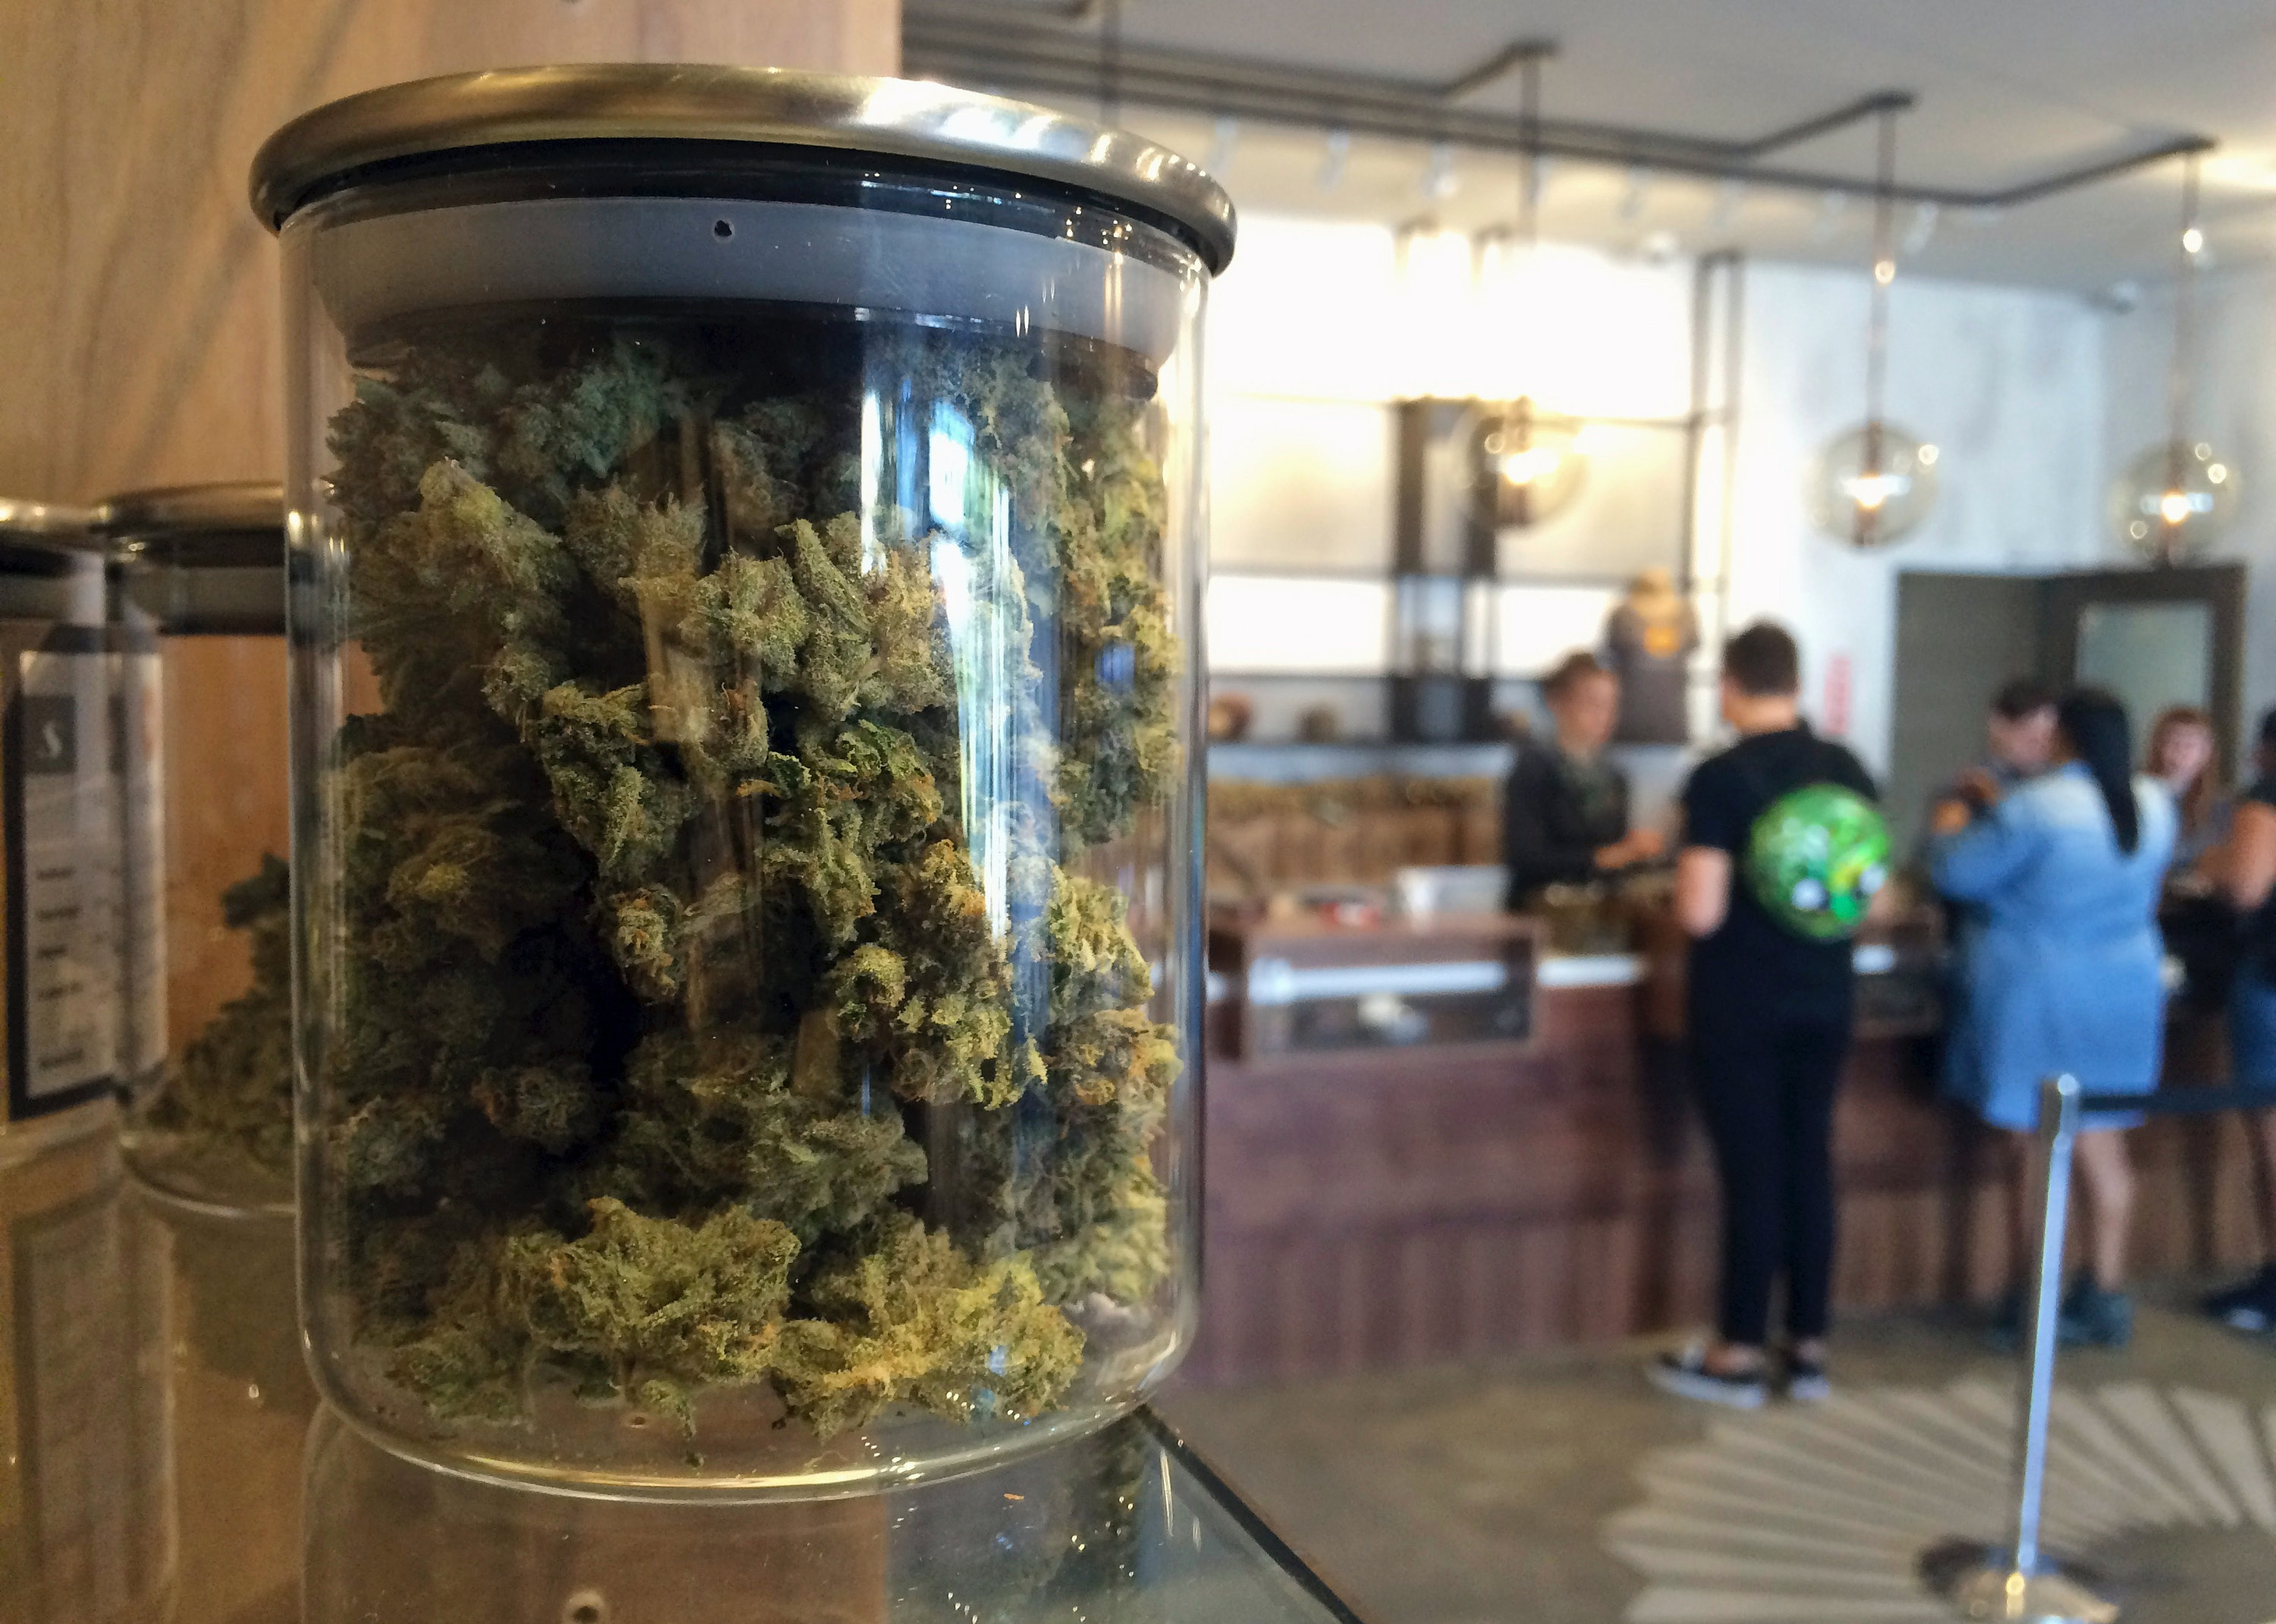 How to get a medical marijuana card in every state: The